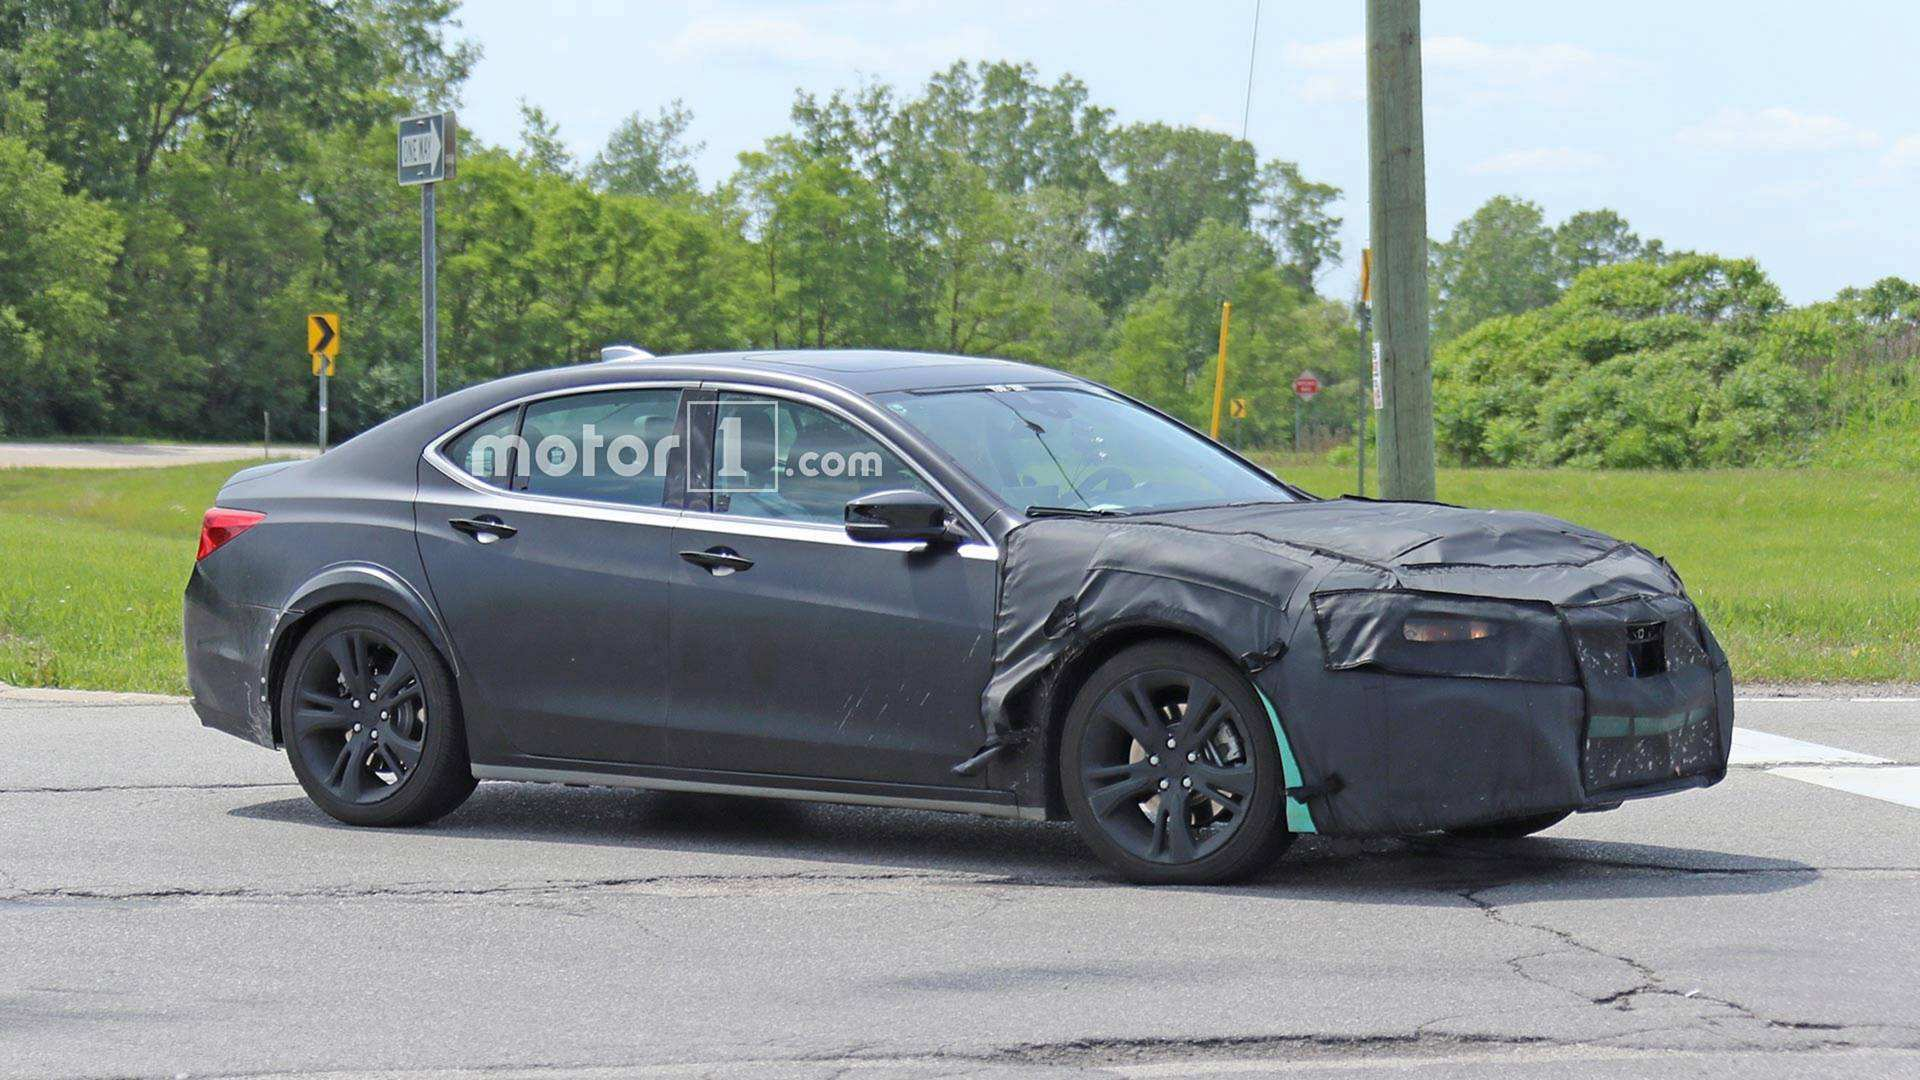 70 All New 2020 Acura V6 Turbo Exterior and Interior for 2020 Acura V6 Turbo